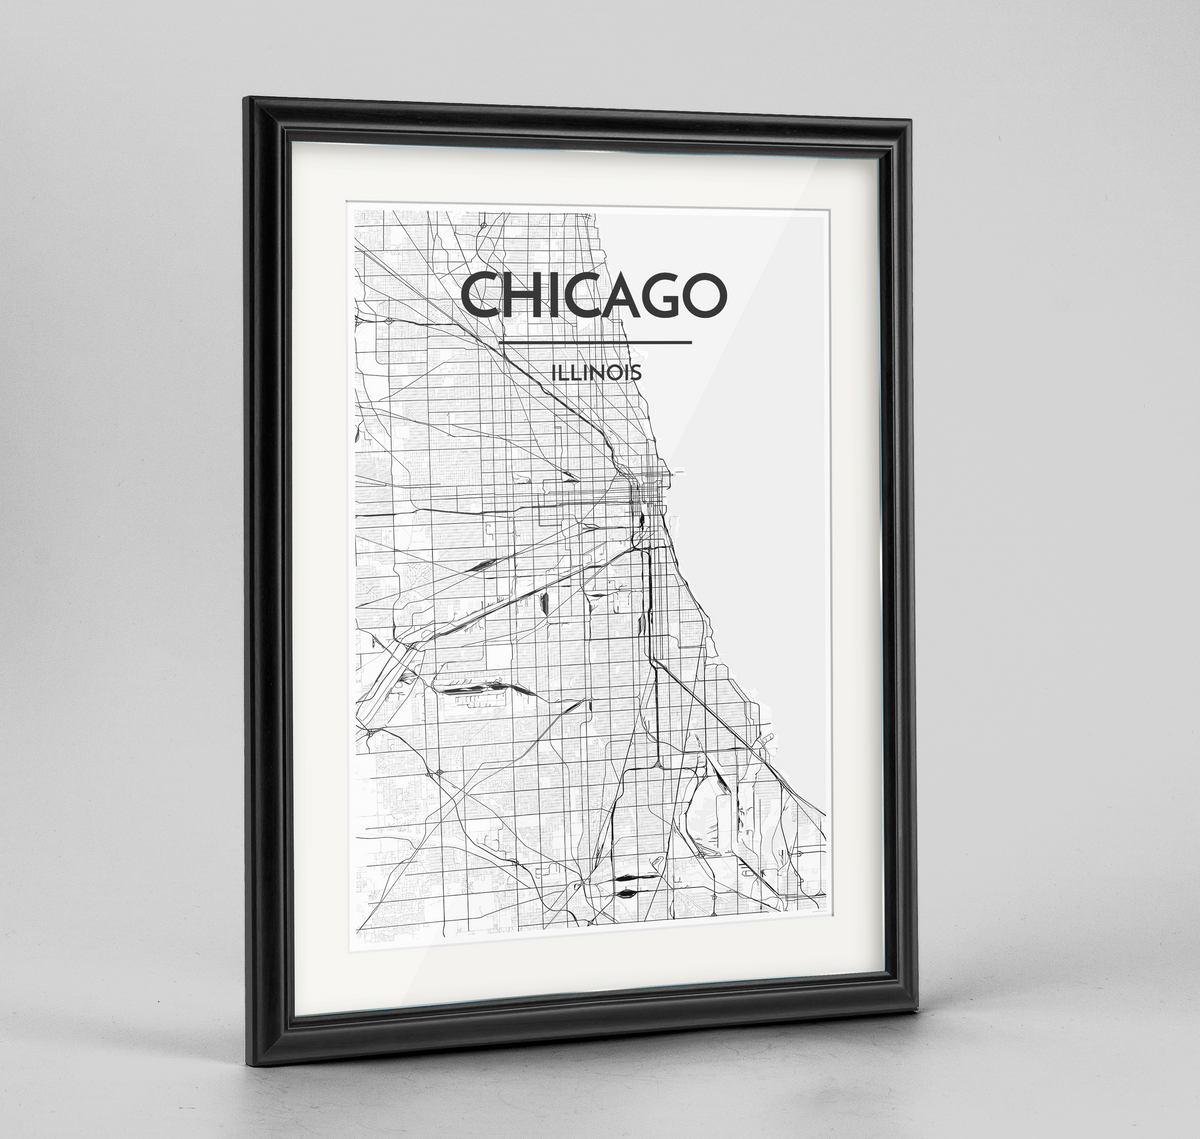 Chicago Map Art Print - Framed